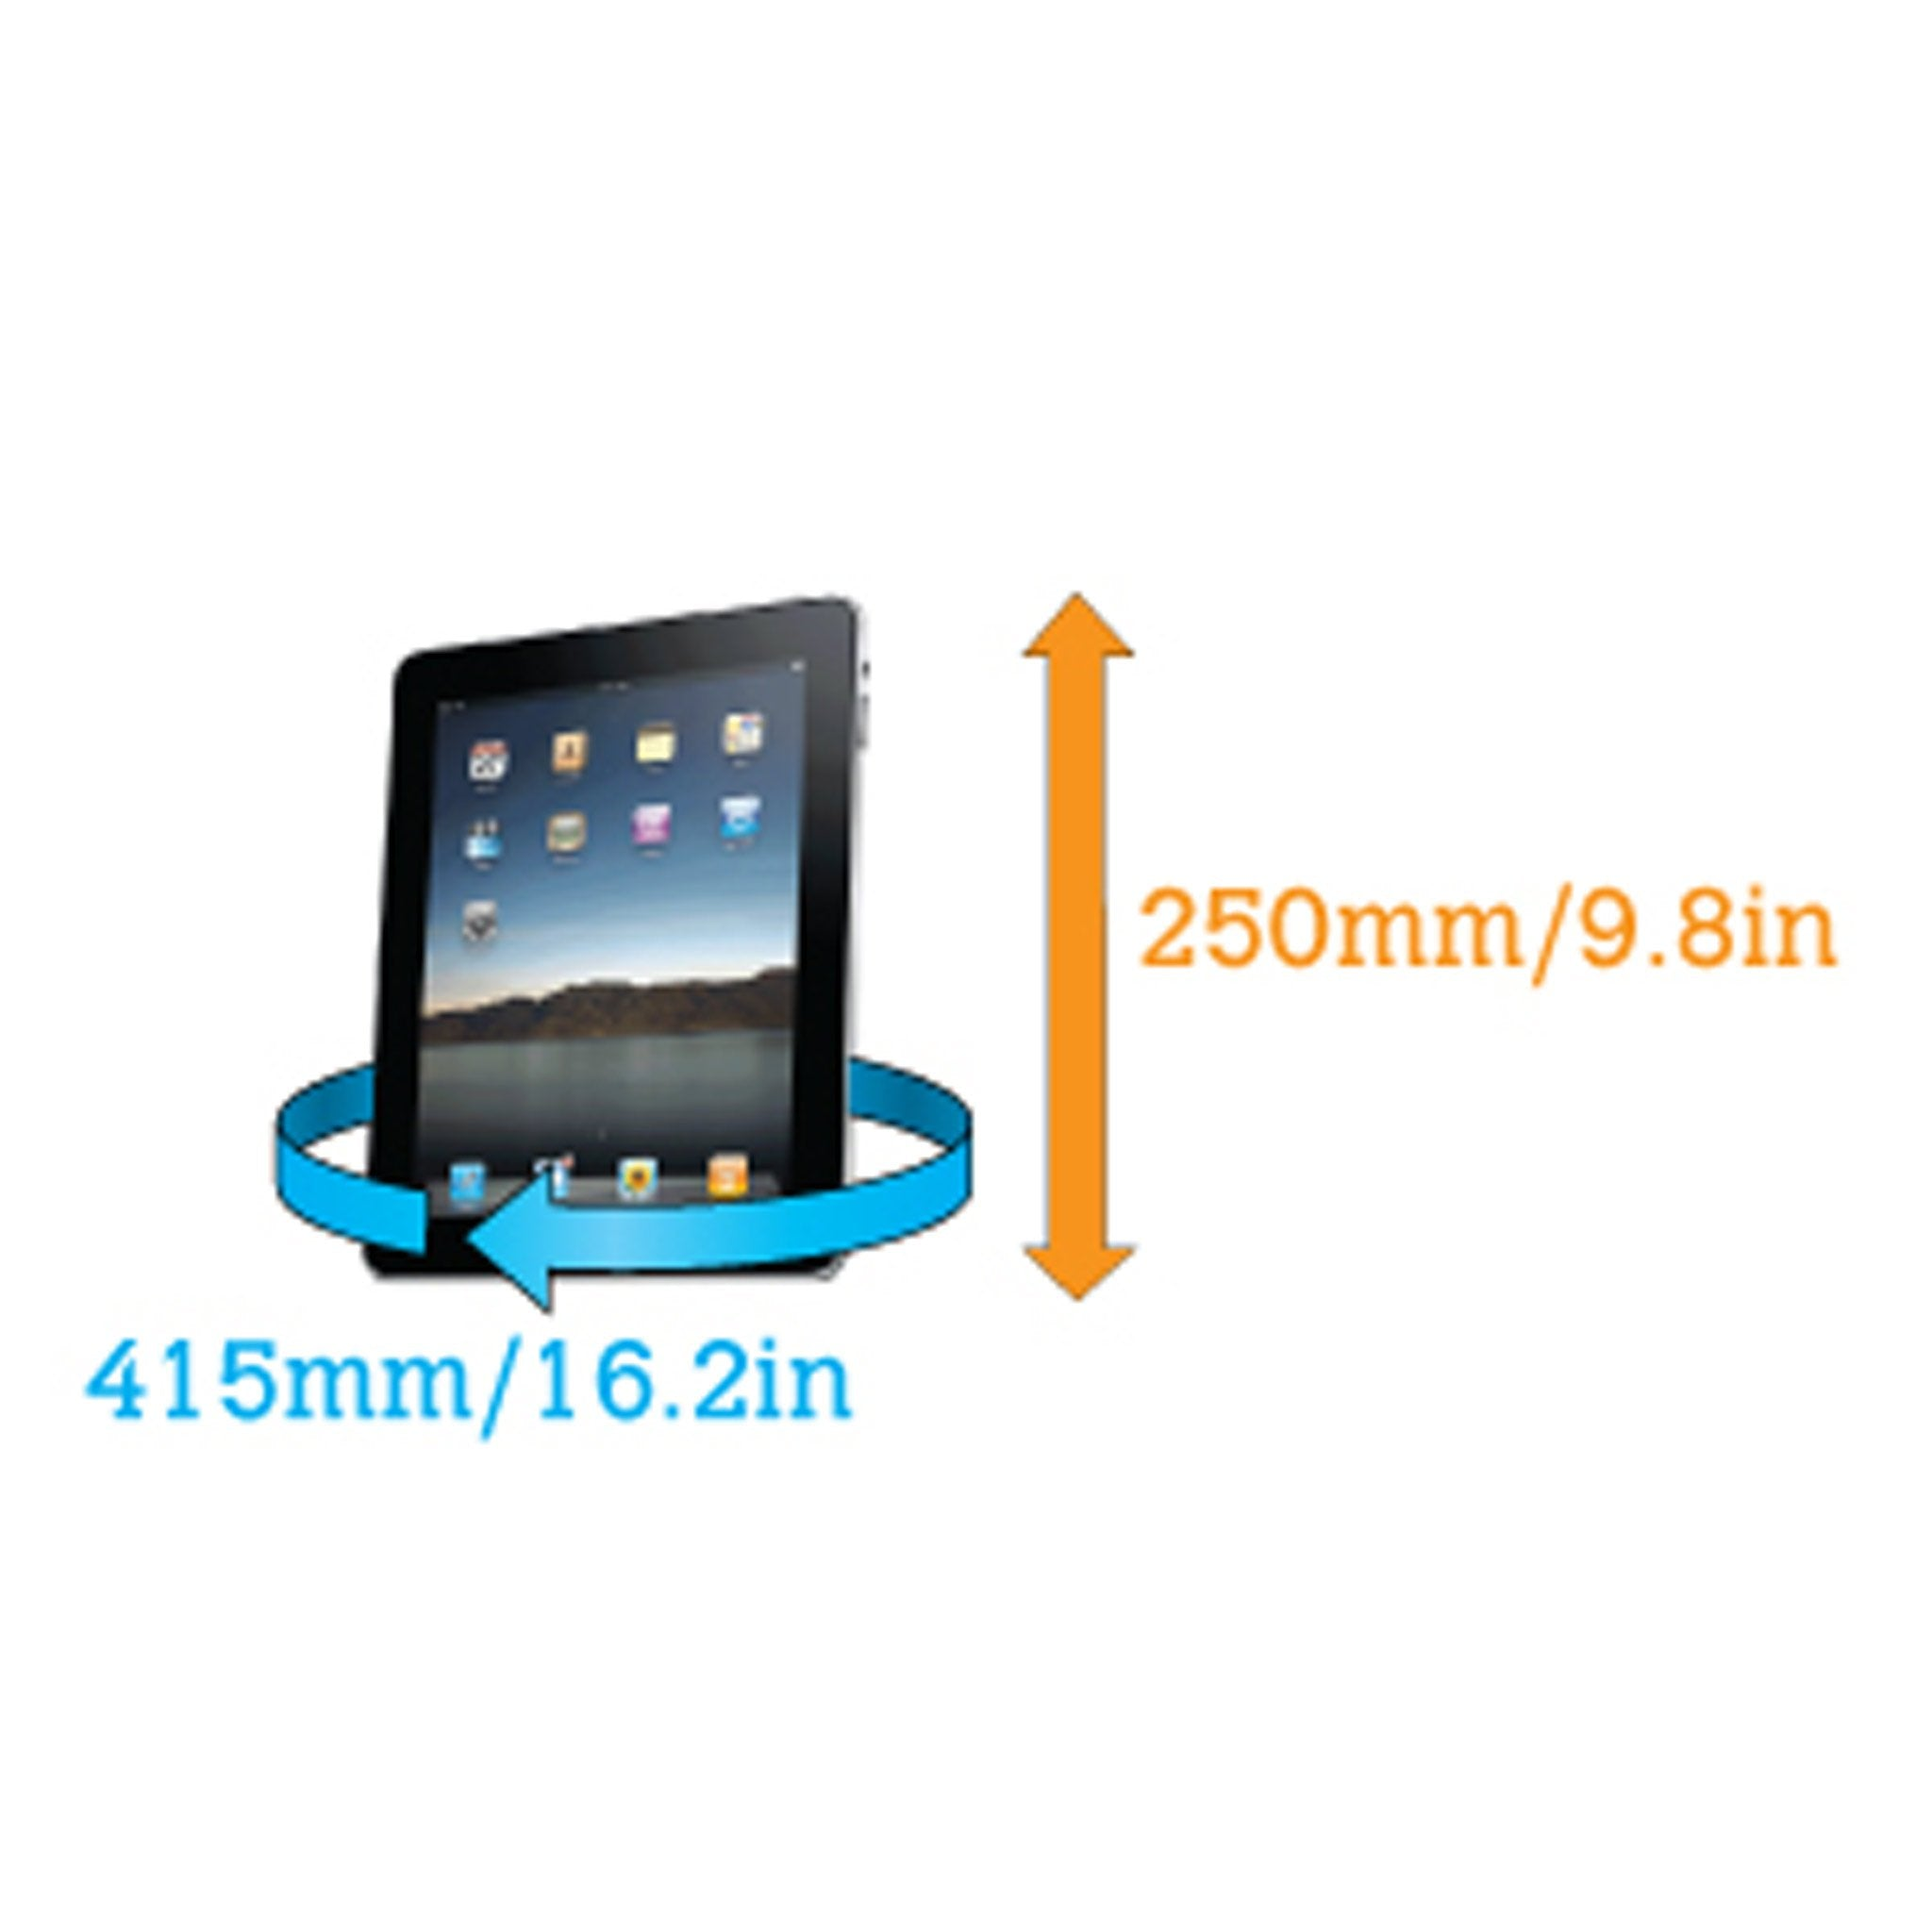 iPad Case with In-Line Head Phone Connector - Arthur Beale